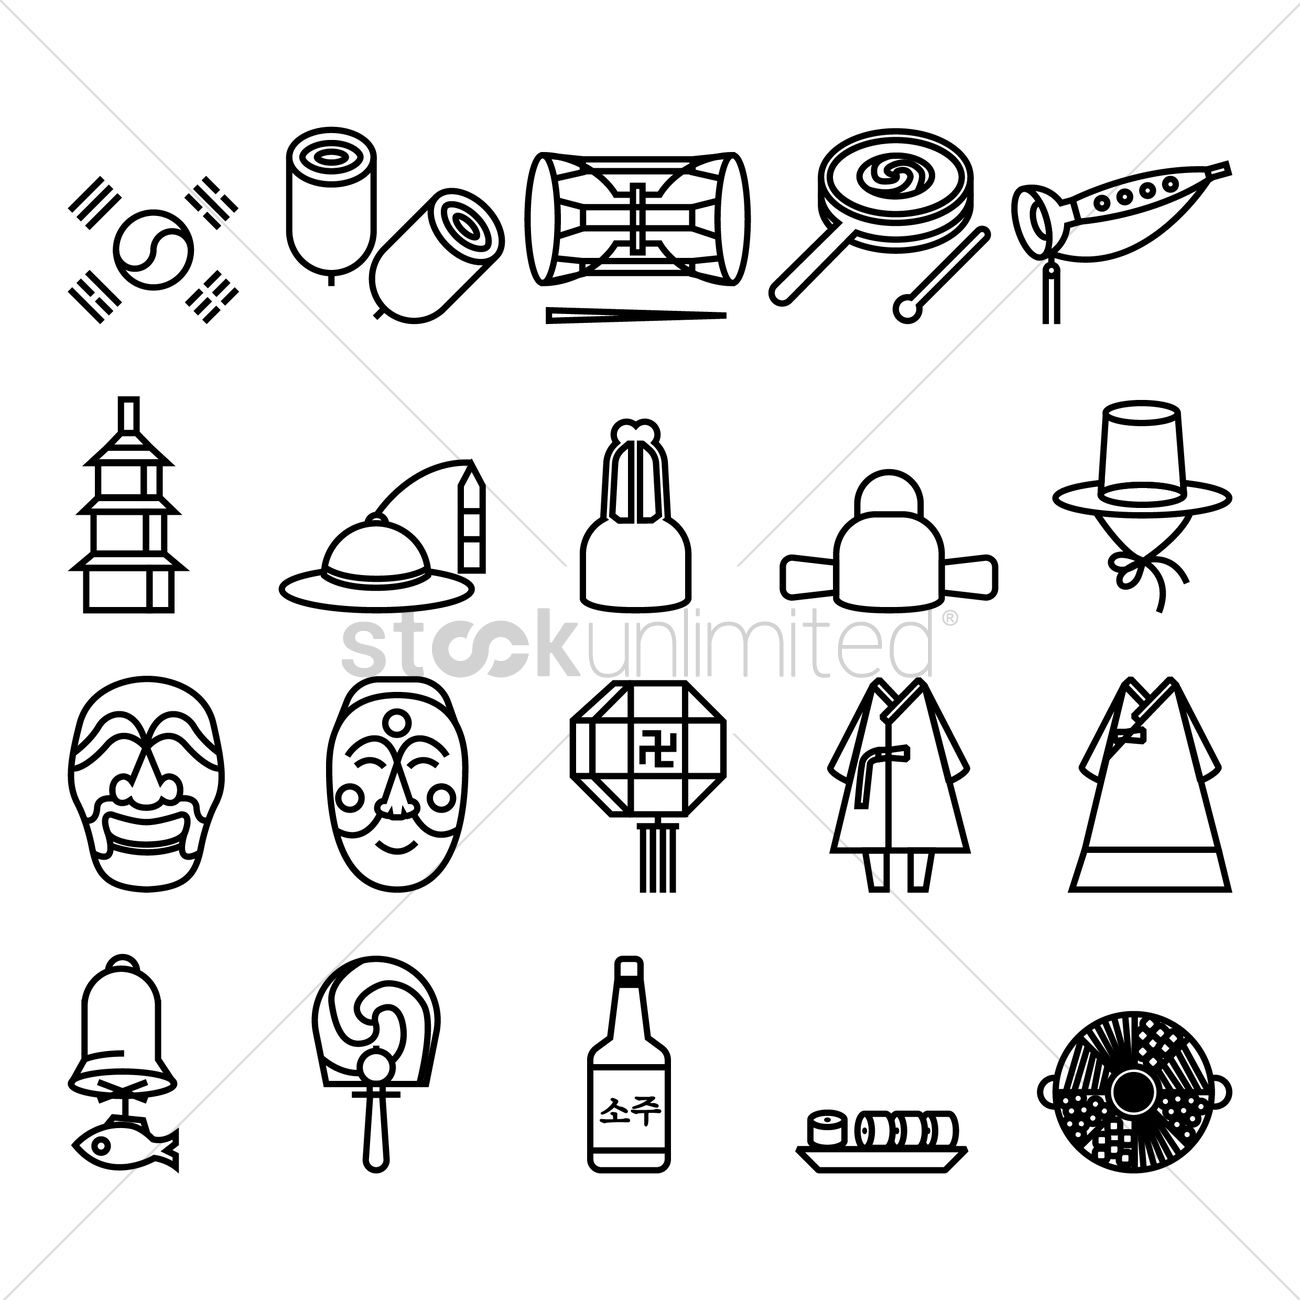 Korean General Icons Vector Image